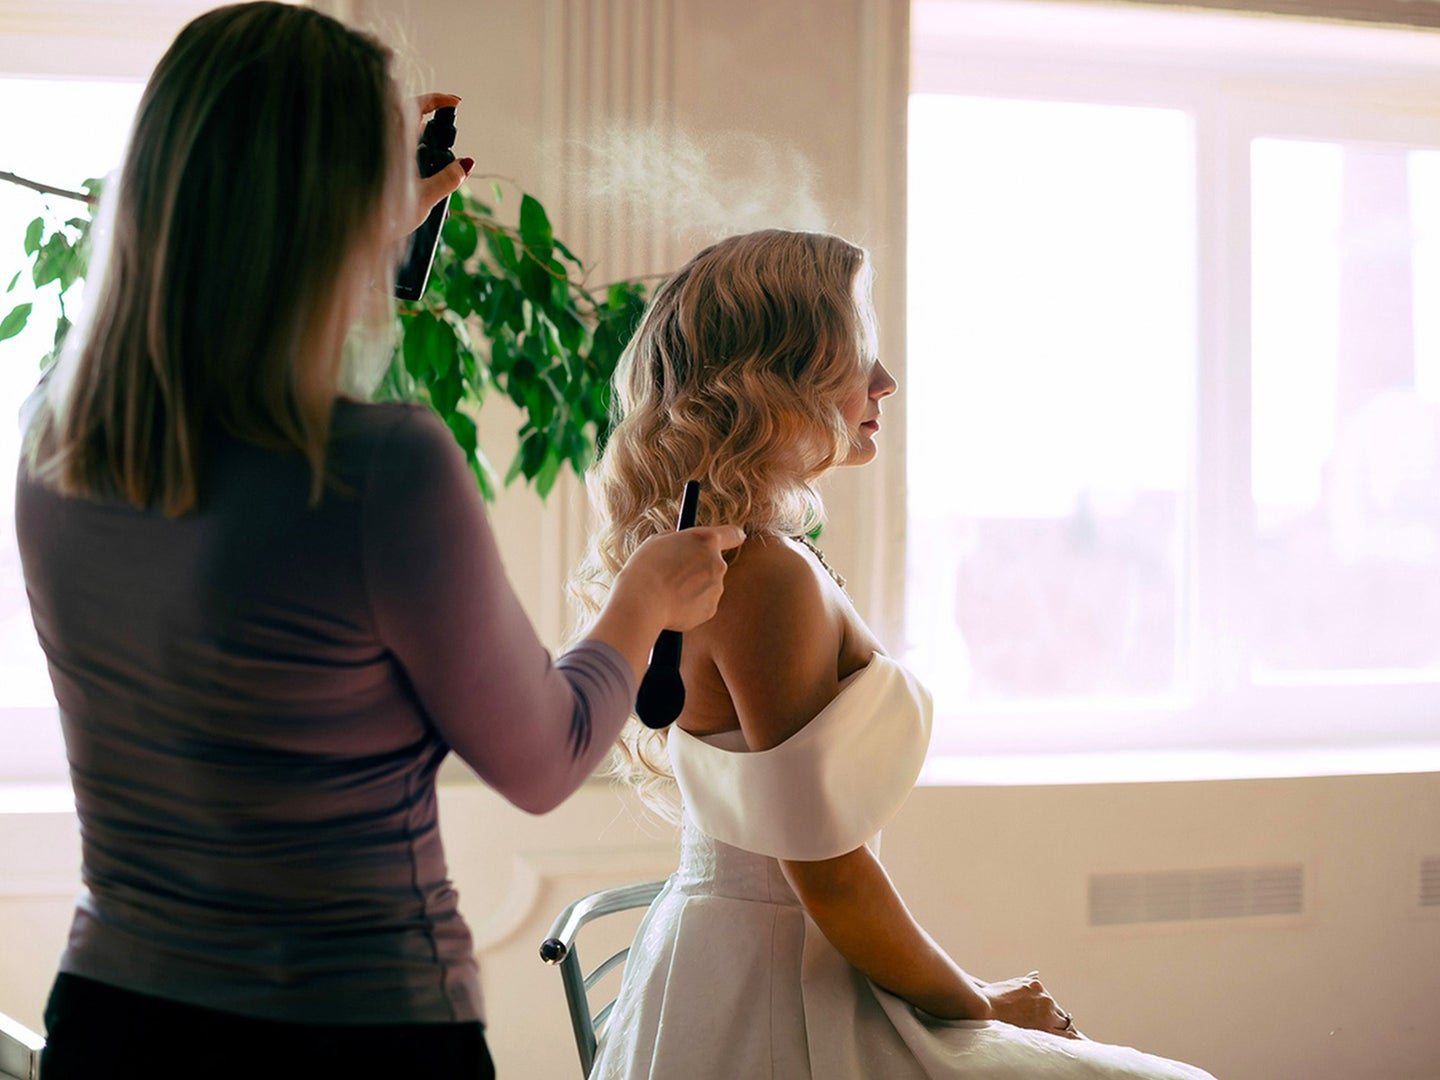 Woman getting her hair dressed up.